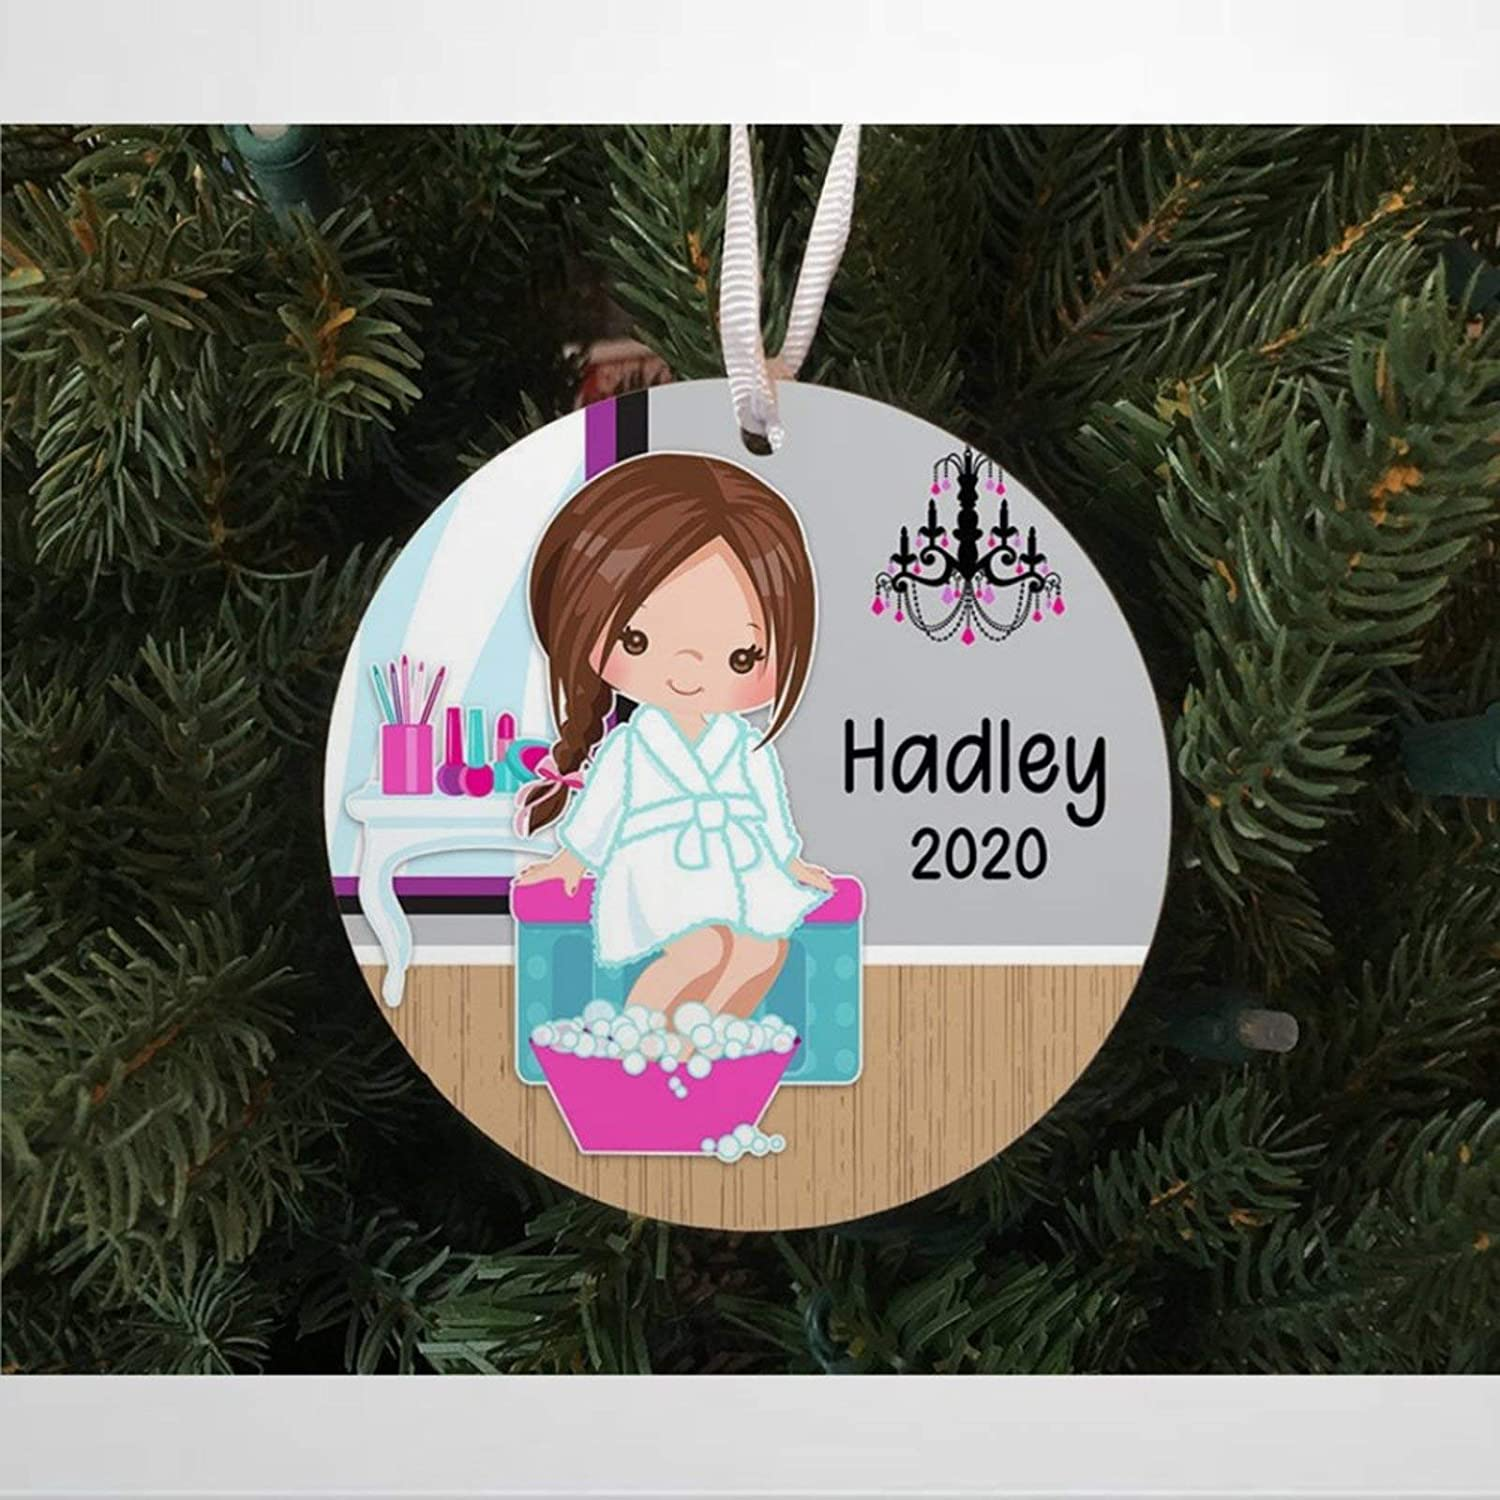 BYRON HOYLE Personalized Girls Relaxing Spa Day Christmas Ceramic Ornaments, Christmas Tree Ornament Decoration Hanging Glossy Ornaments Funny Xmas Presents Window Door Kitchen Dress up Bauble